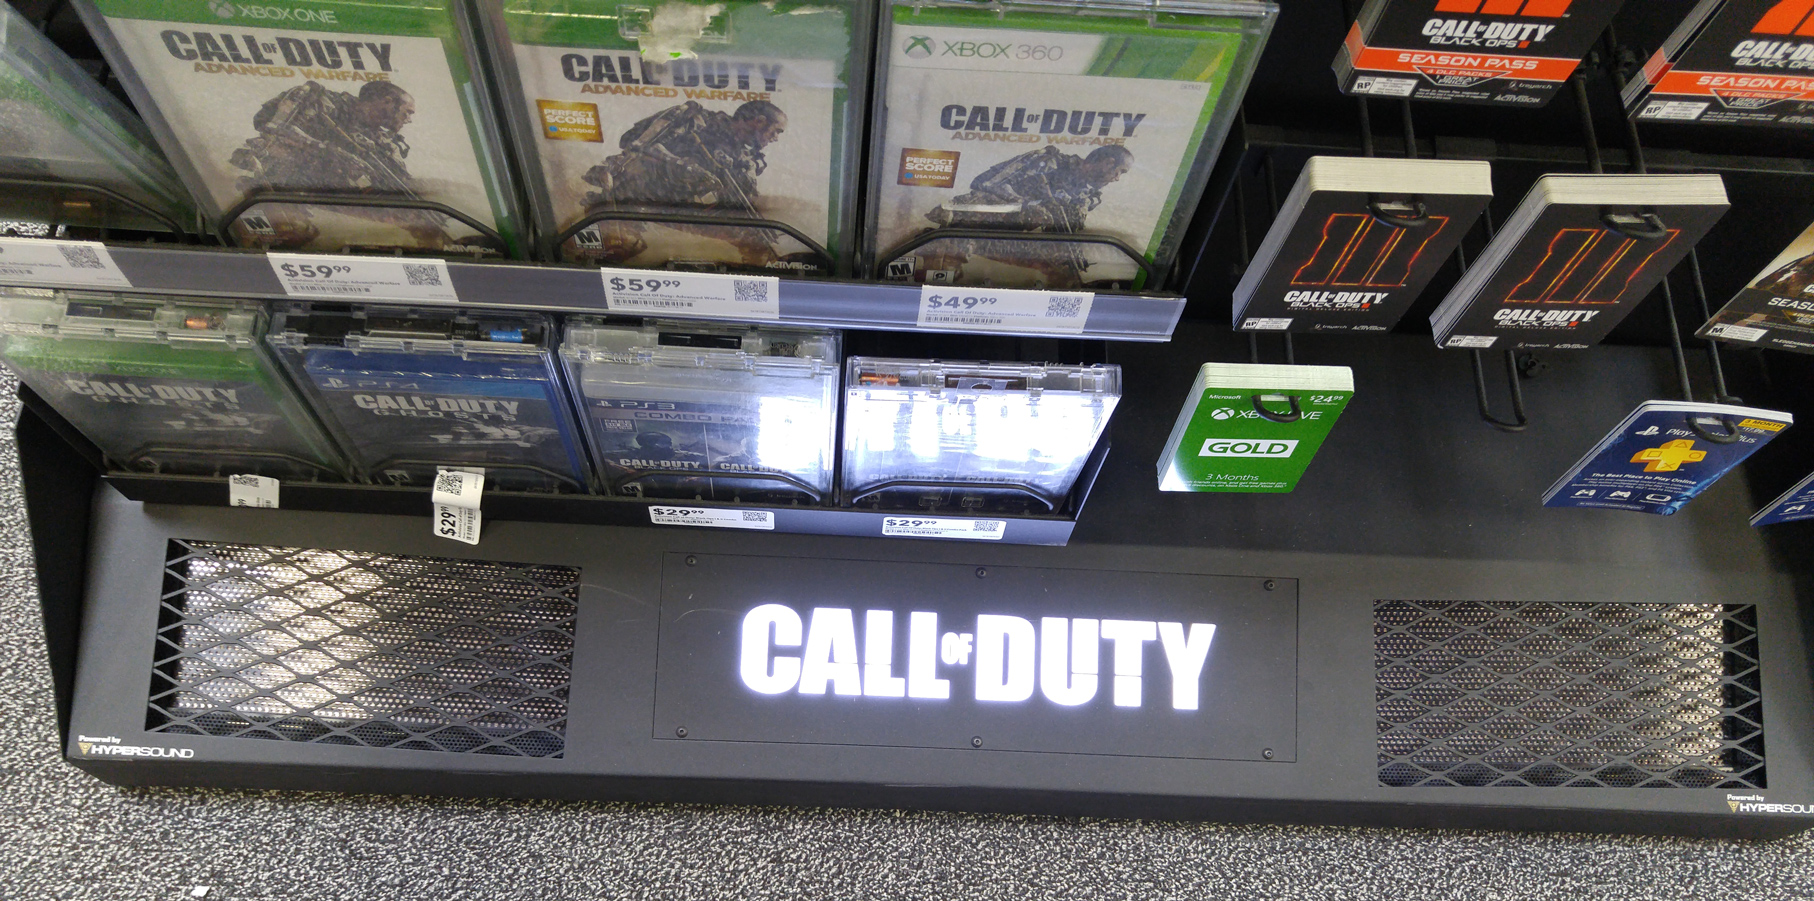 HyperSound Call of Duty Best Buy kiosk close